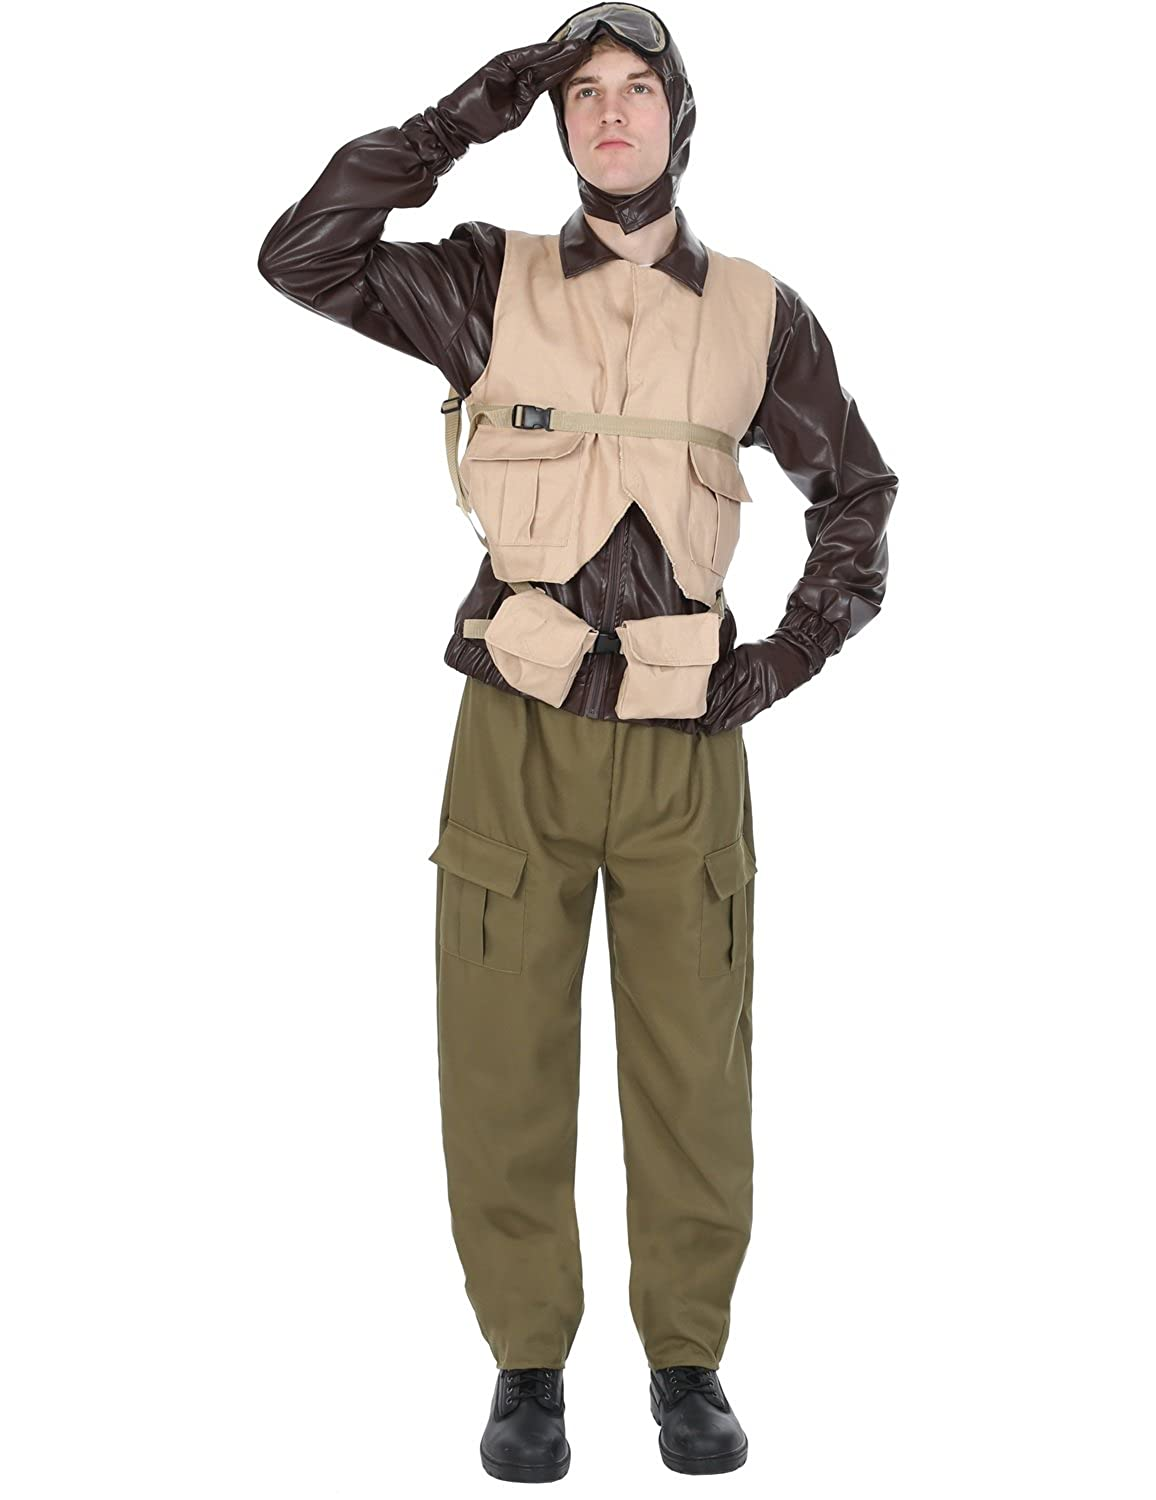 1940s Men's Costumes: WW2, Sailor, Zoot Suits, Gangsters, Detective Orion Costumes Mens World War II WW2 Fighter Pilot 1940s Aviator Fancy Dress Costume £26.11 AT vintagedancer.com